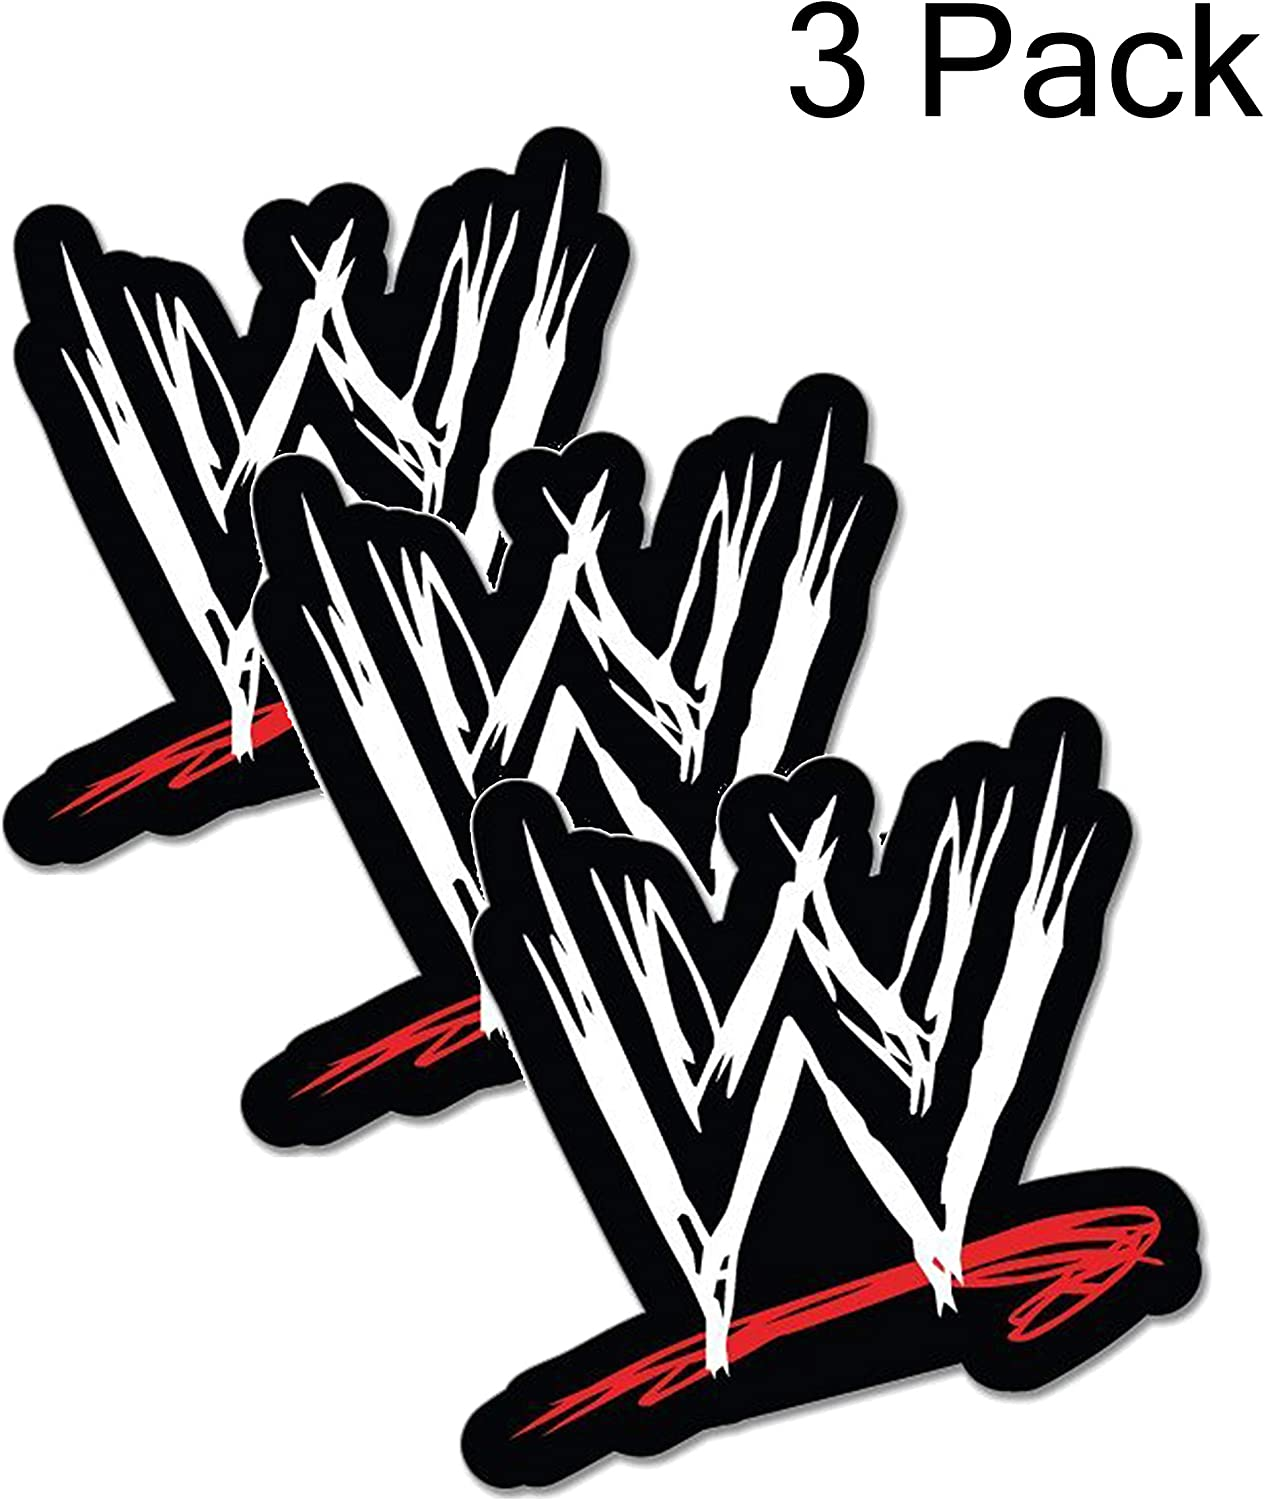 GTOTd Stickers for World Wrestling Entertainment. 4x4'' Sticker Decal (3 Pcs).Gifts World Wrestling Entertainment Toys Merchandise Party Supplies for Fans.